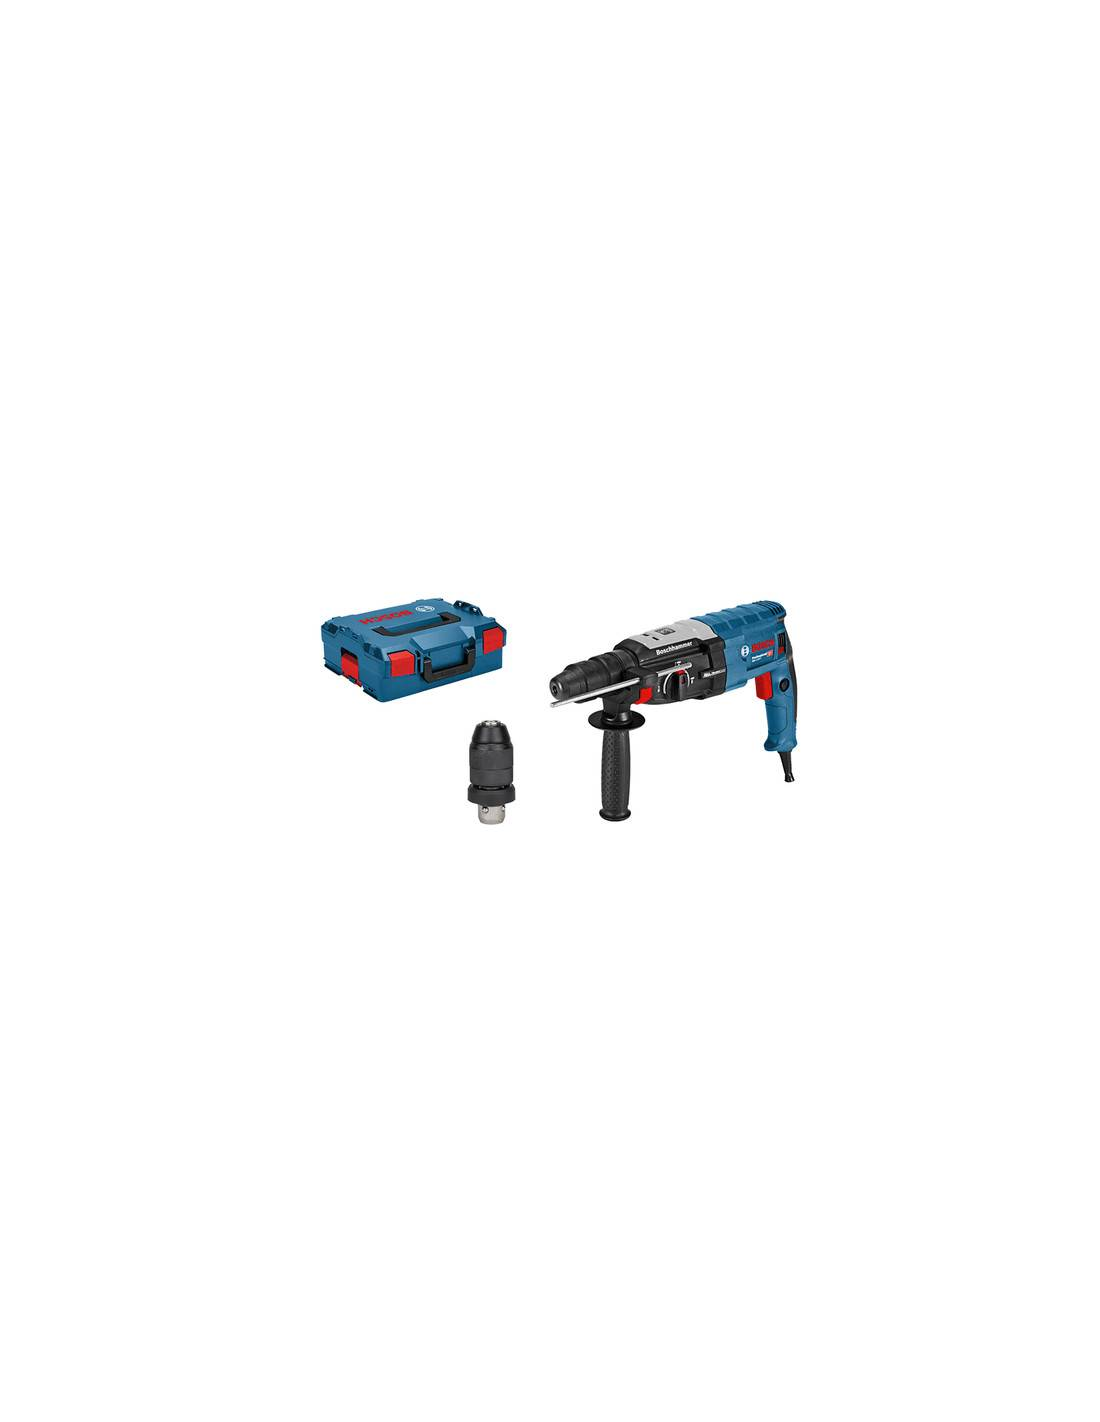 BOSCH - Perforateur BOSCH GBH 2-28 F Professional SDS-Plus 880 W + L-Boxx - 0611267601